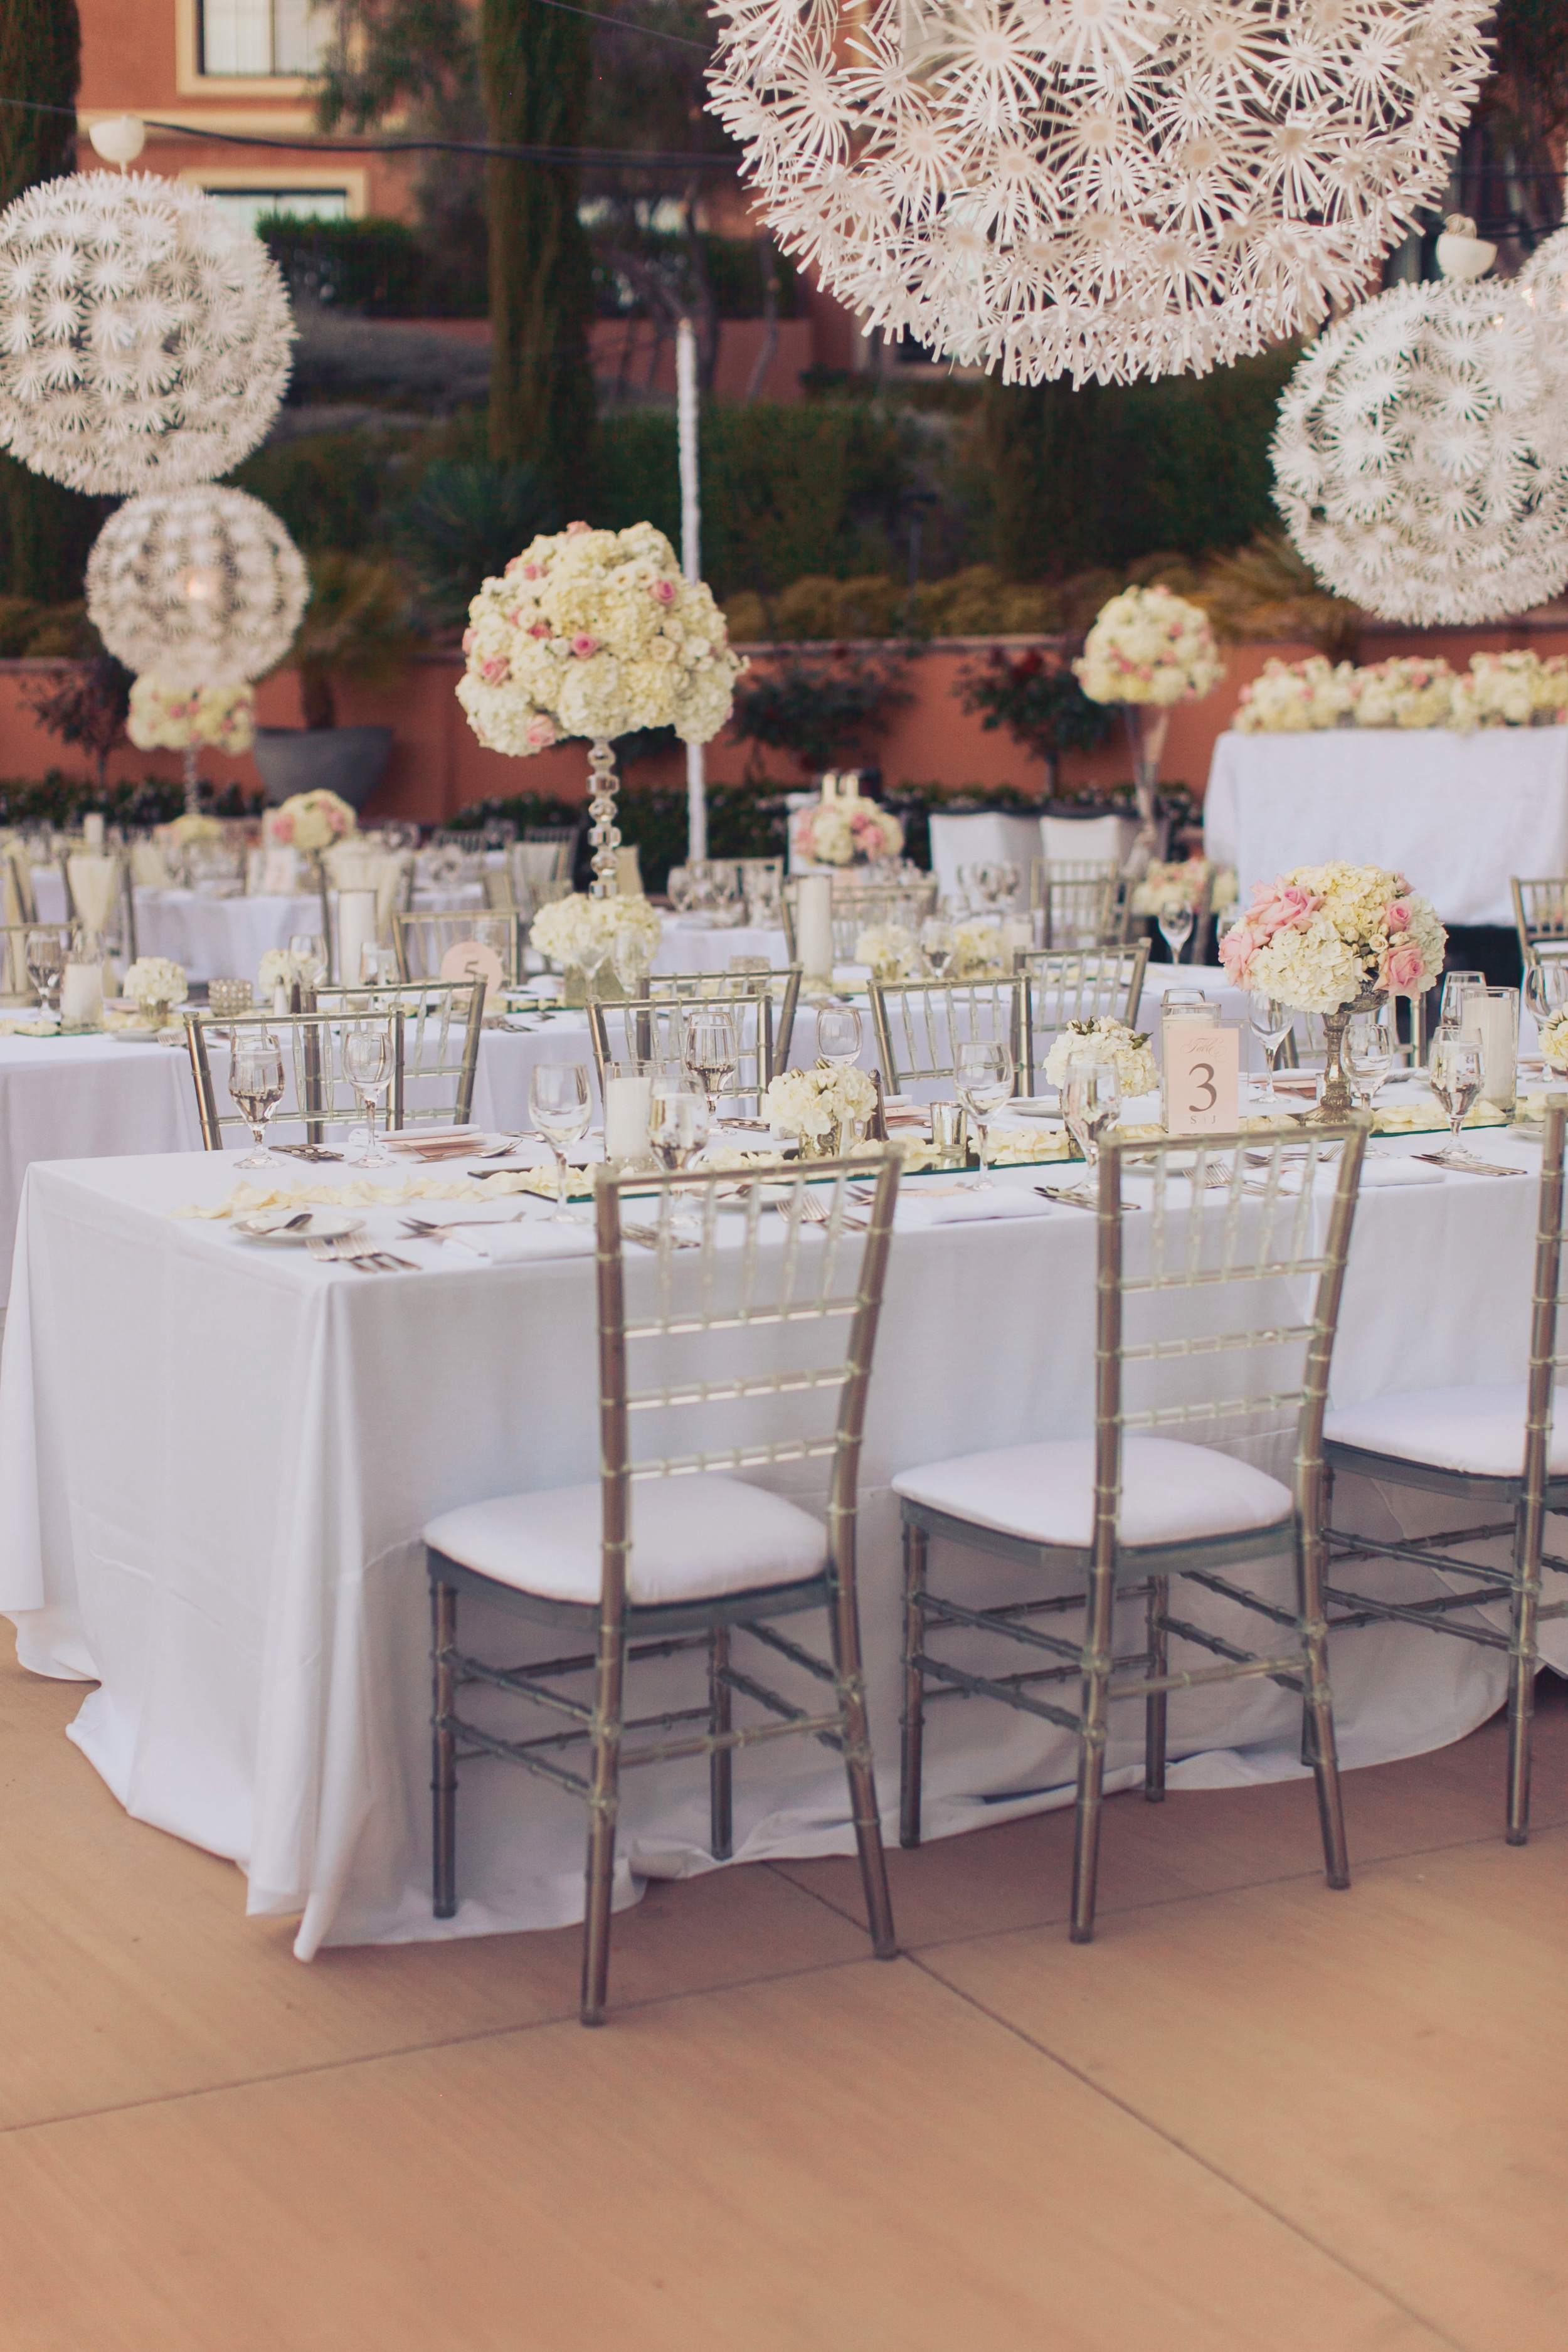 Enormous white orbs were strung above the tables, creating a magnificent lighting option that complimented the garden setting in a totally unique way. Las Vegas Wedding Planner Andrea Eppolito   Wedding at Lake Las Vegas   White and Blu  sh and Grey Wedding